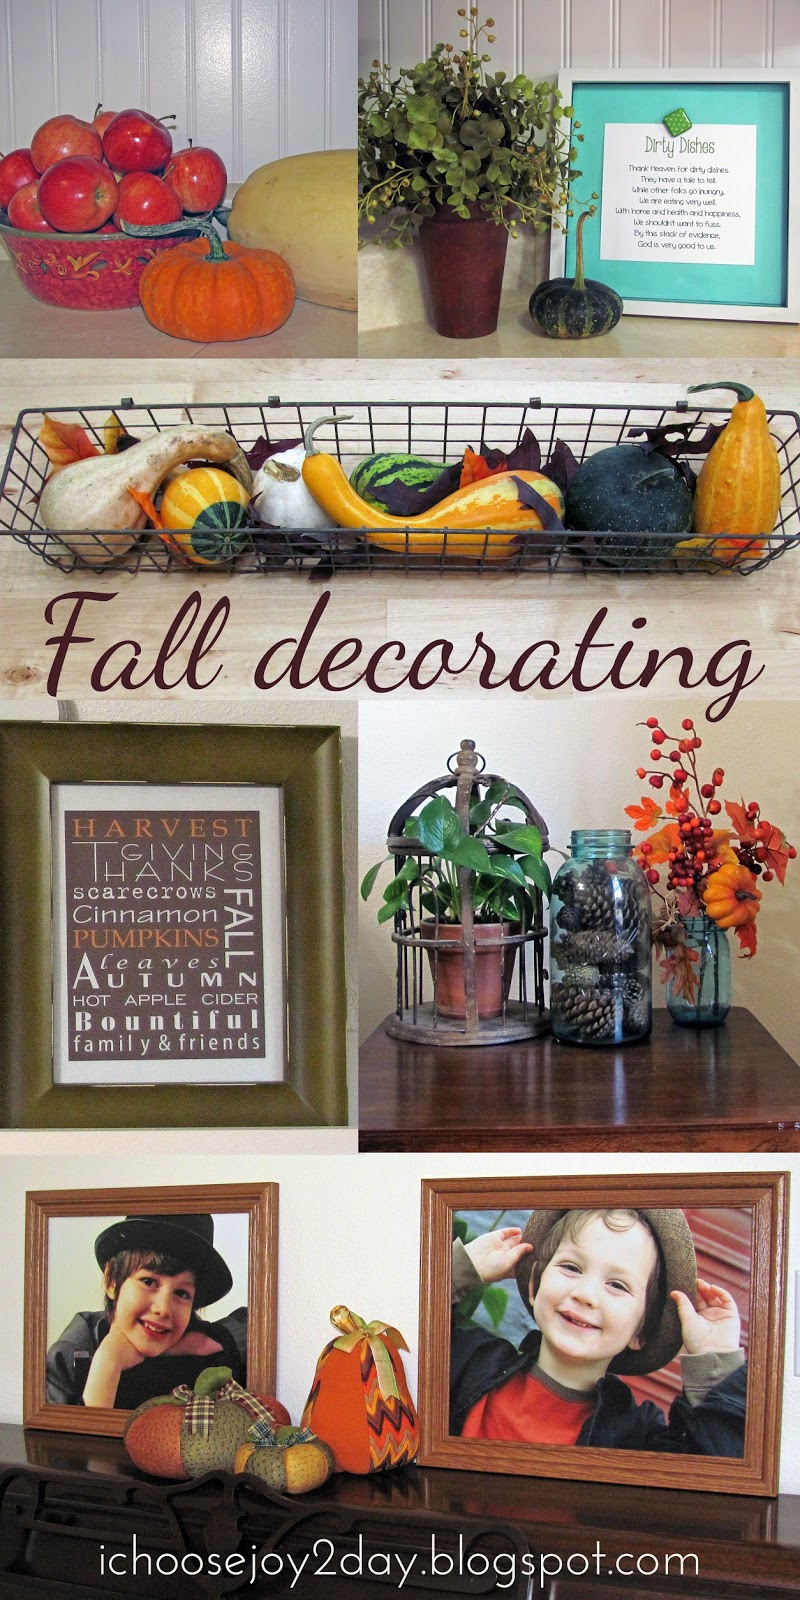 http://ichoosejoy2day.blogspot.com/2014/09/fall-decorating.html